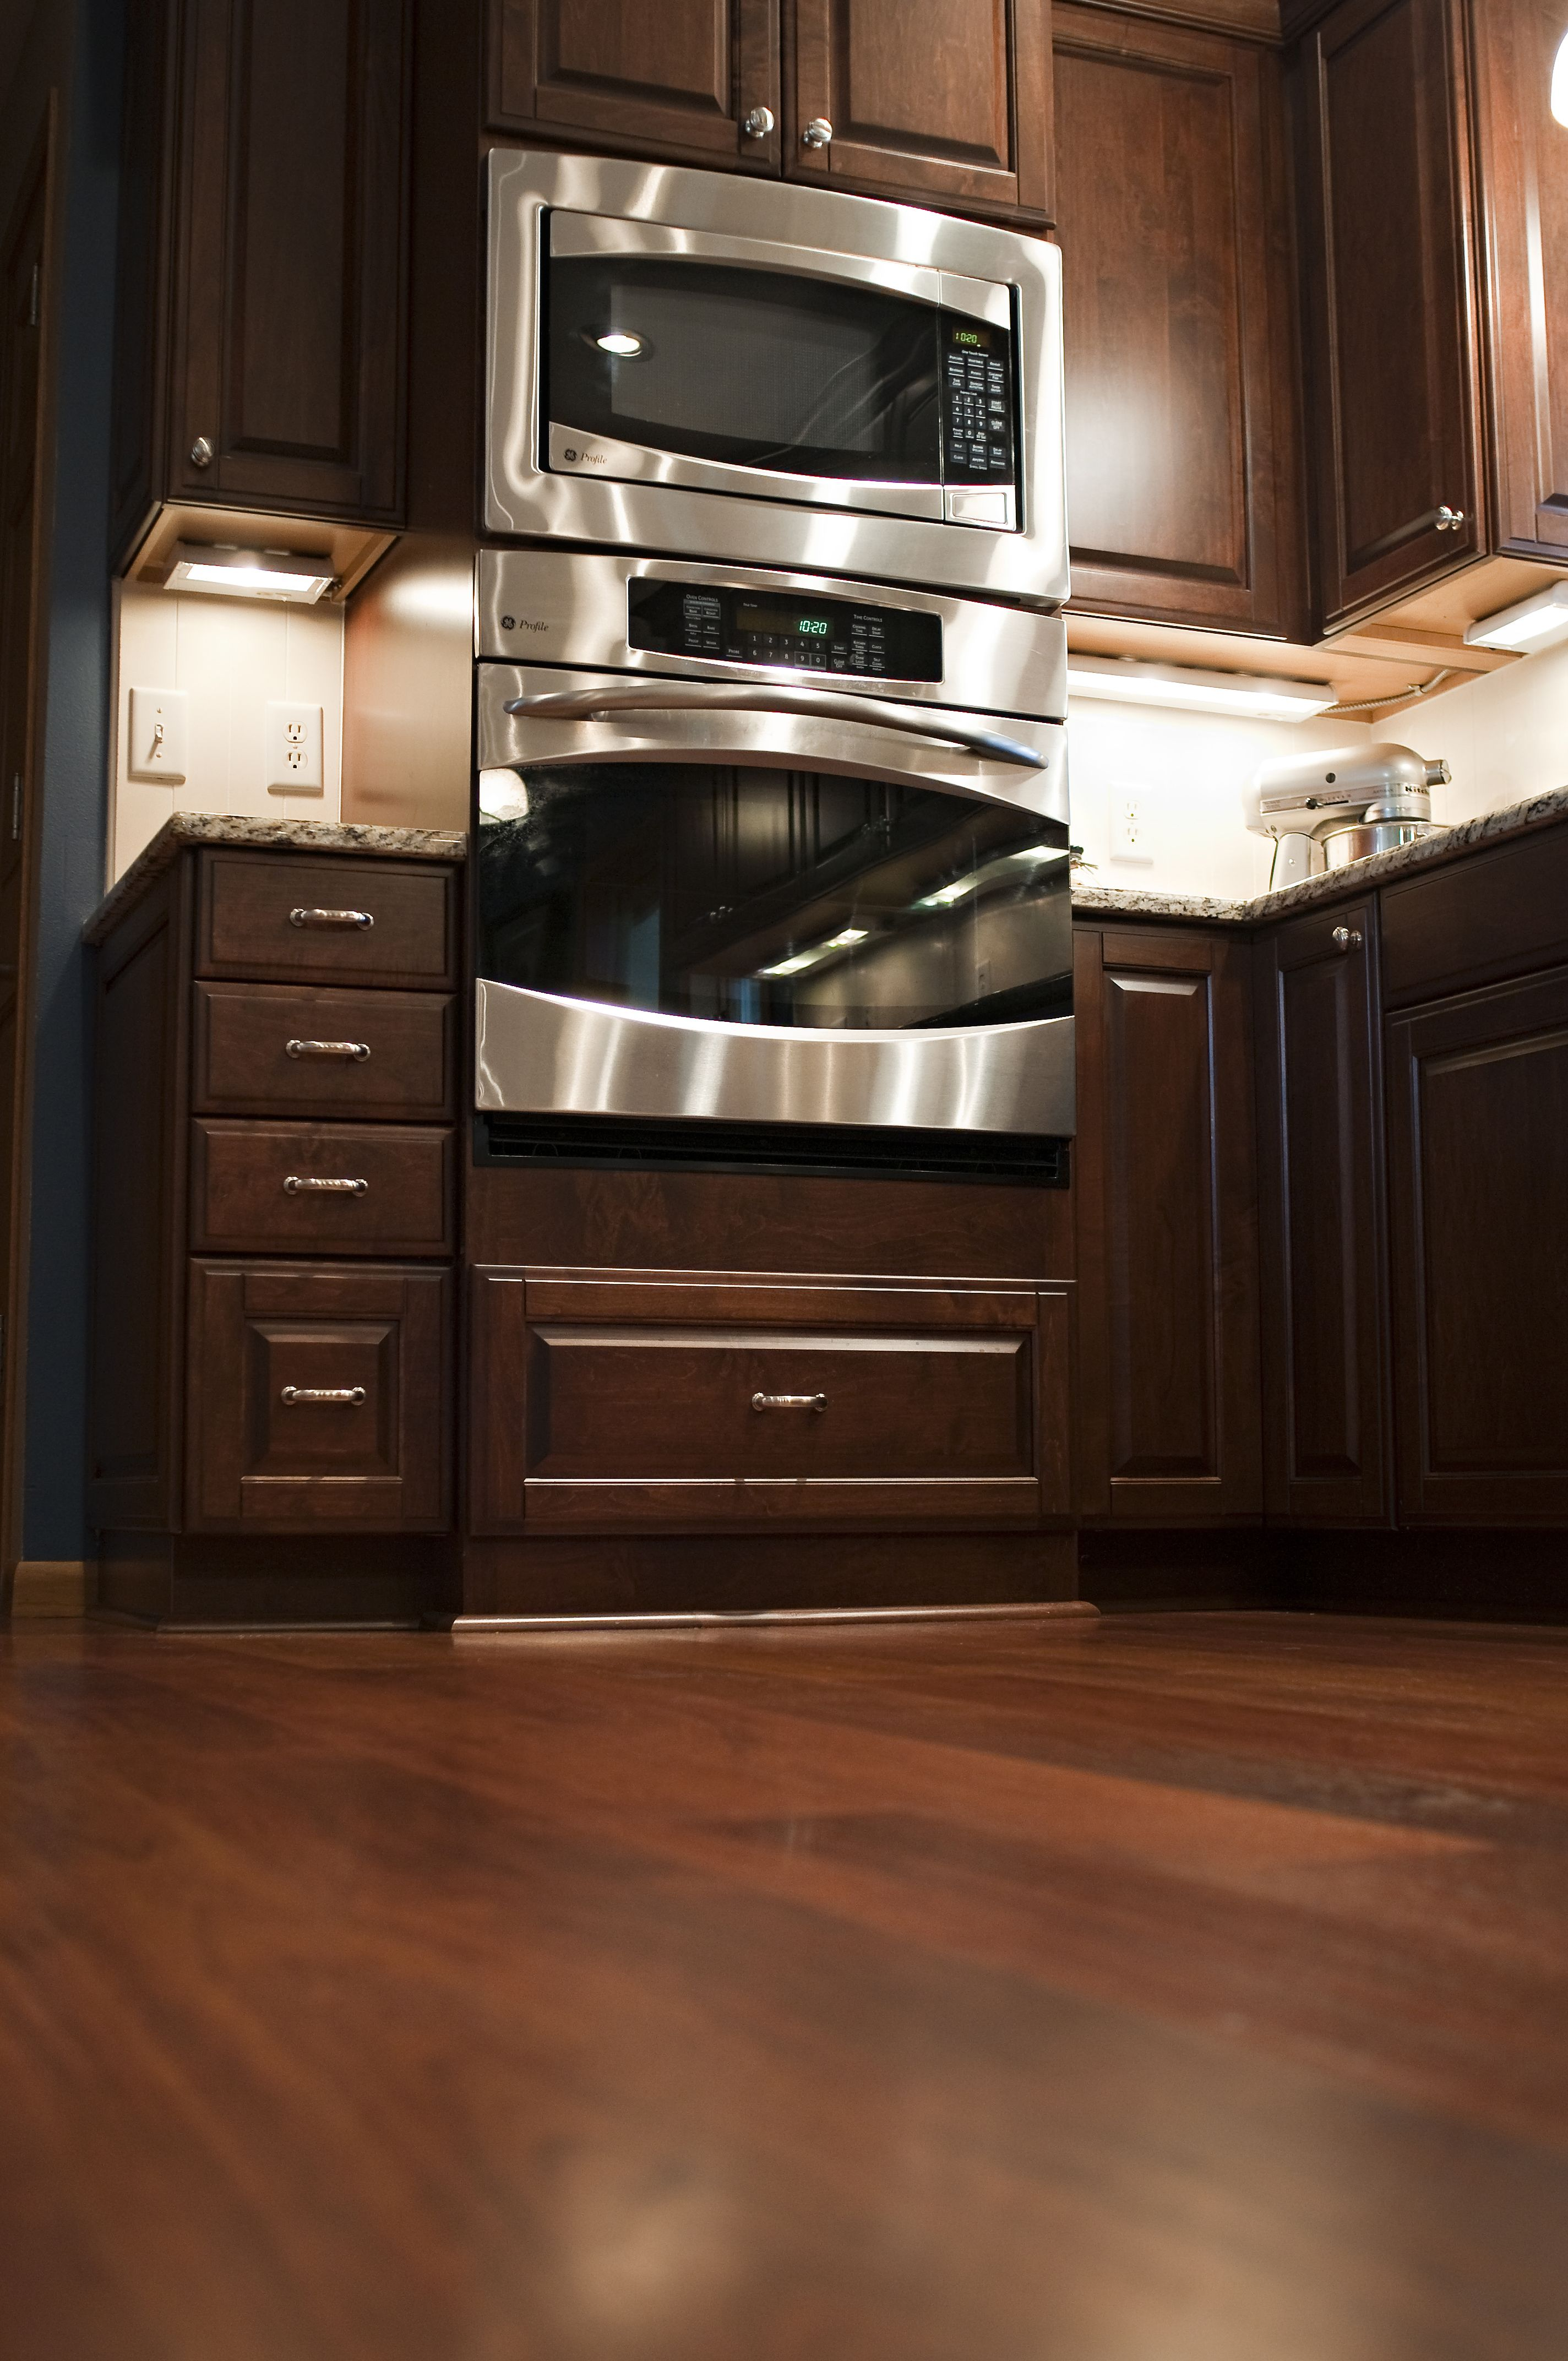 Microwave Oven Cabinet ~ Microwave and oven cabinet home ideas pinterest